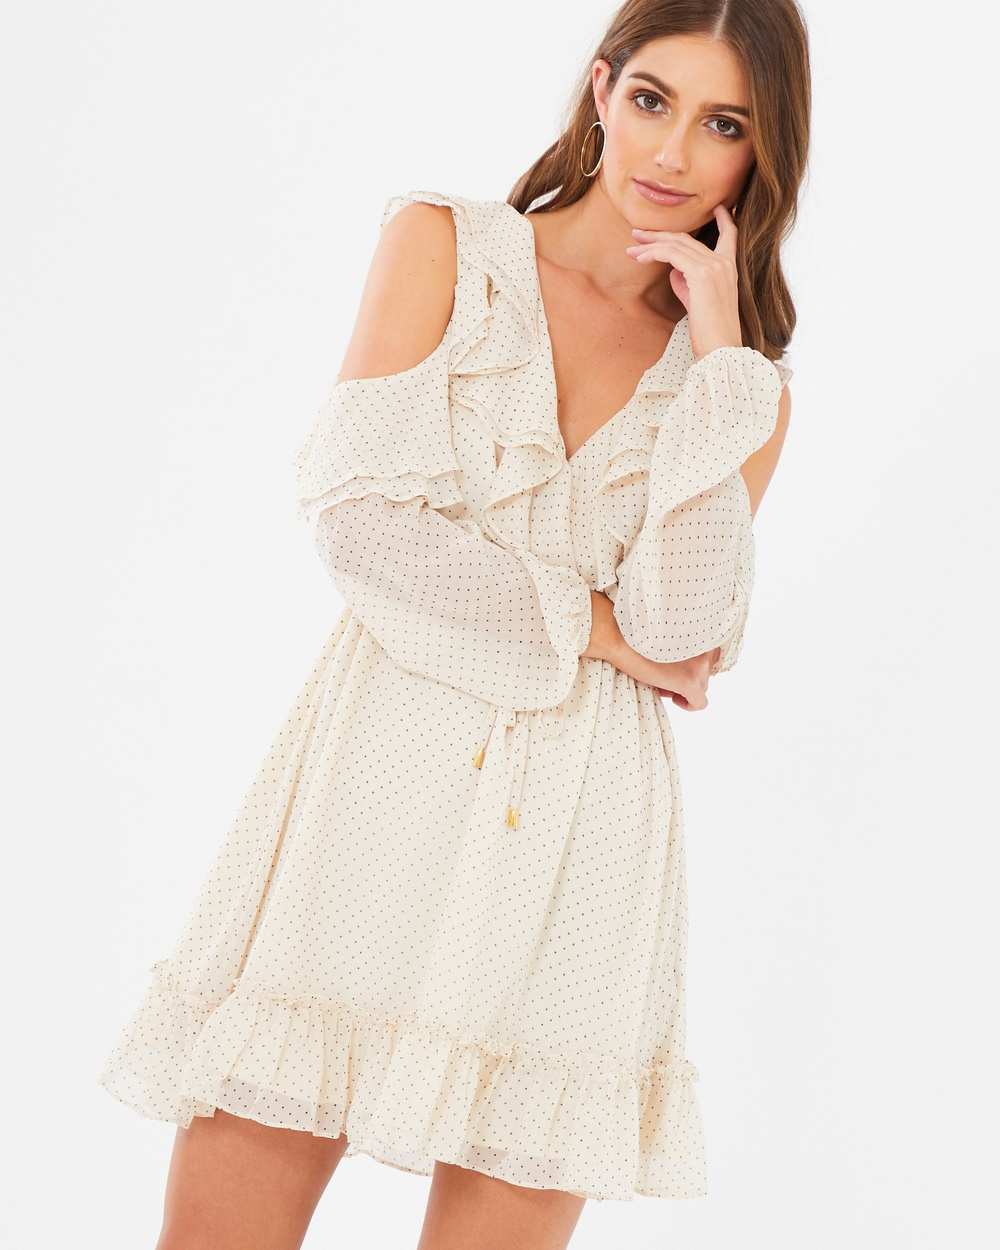 CHANCERY Erica Frill Dress Dresses Ivory Base Polka Dot Erica Frill Dress